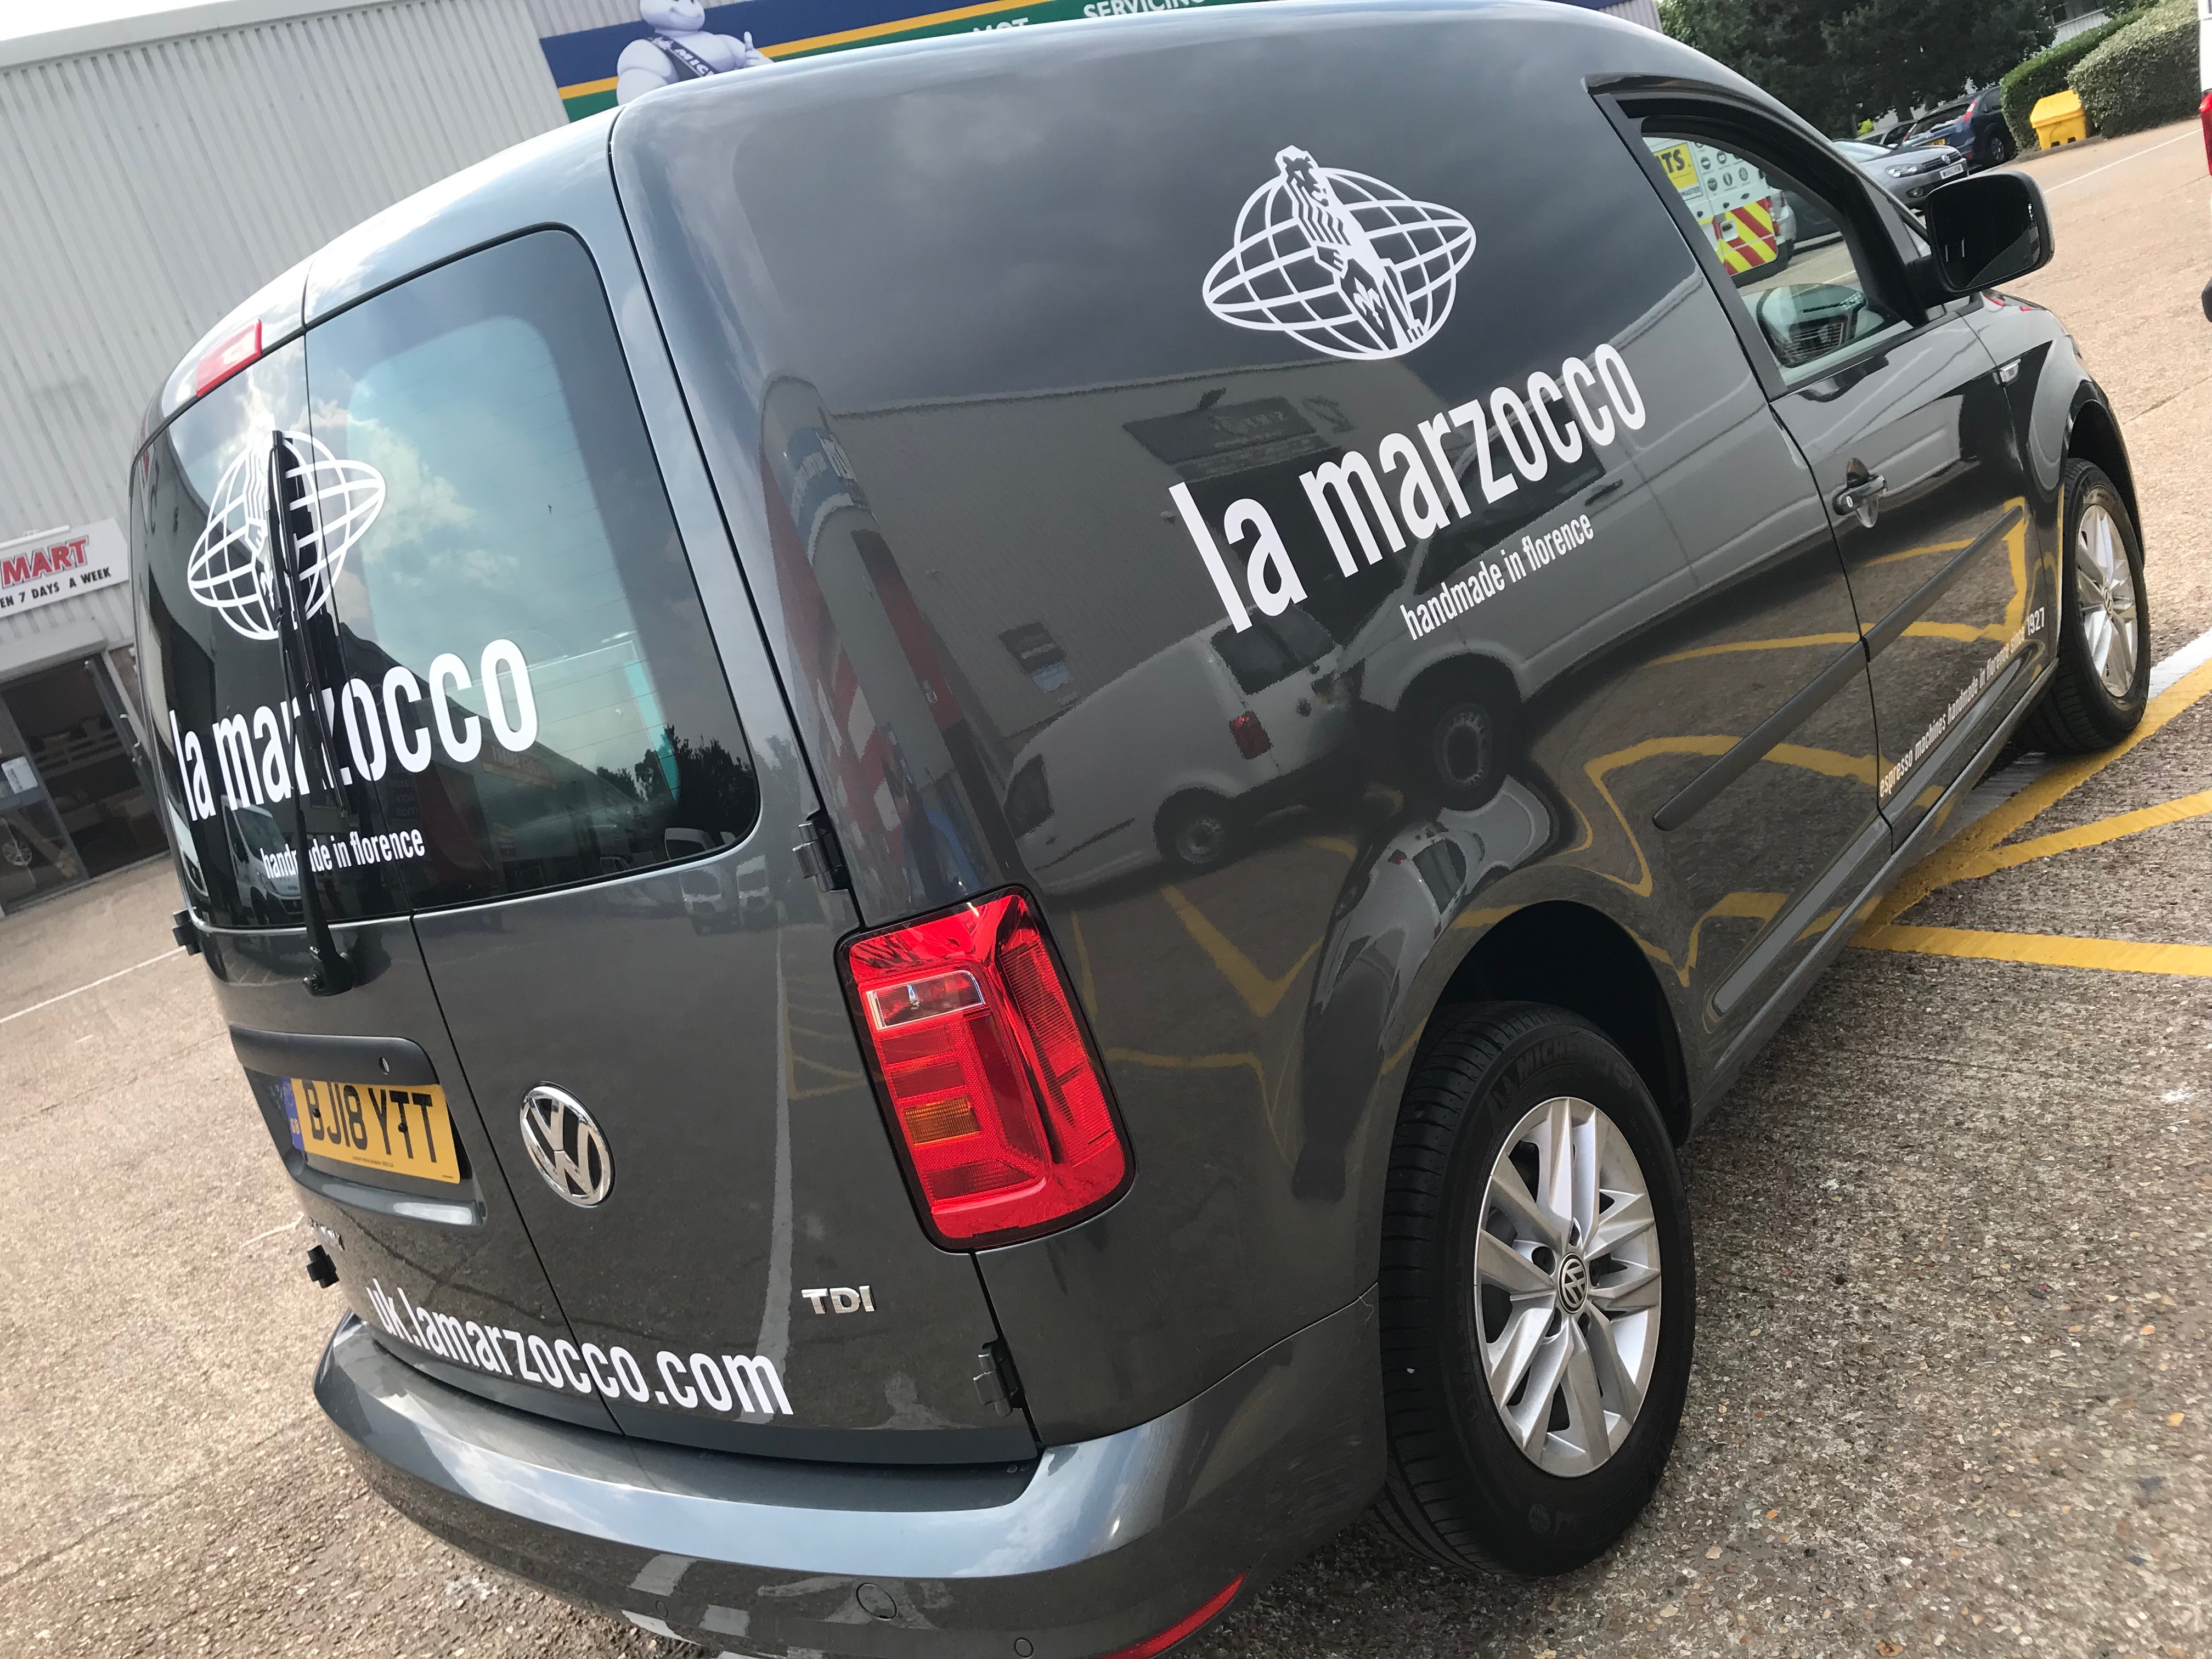 LA MARZOCCA CADDY GRAPHICS